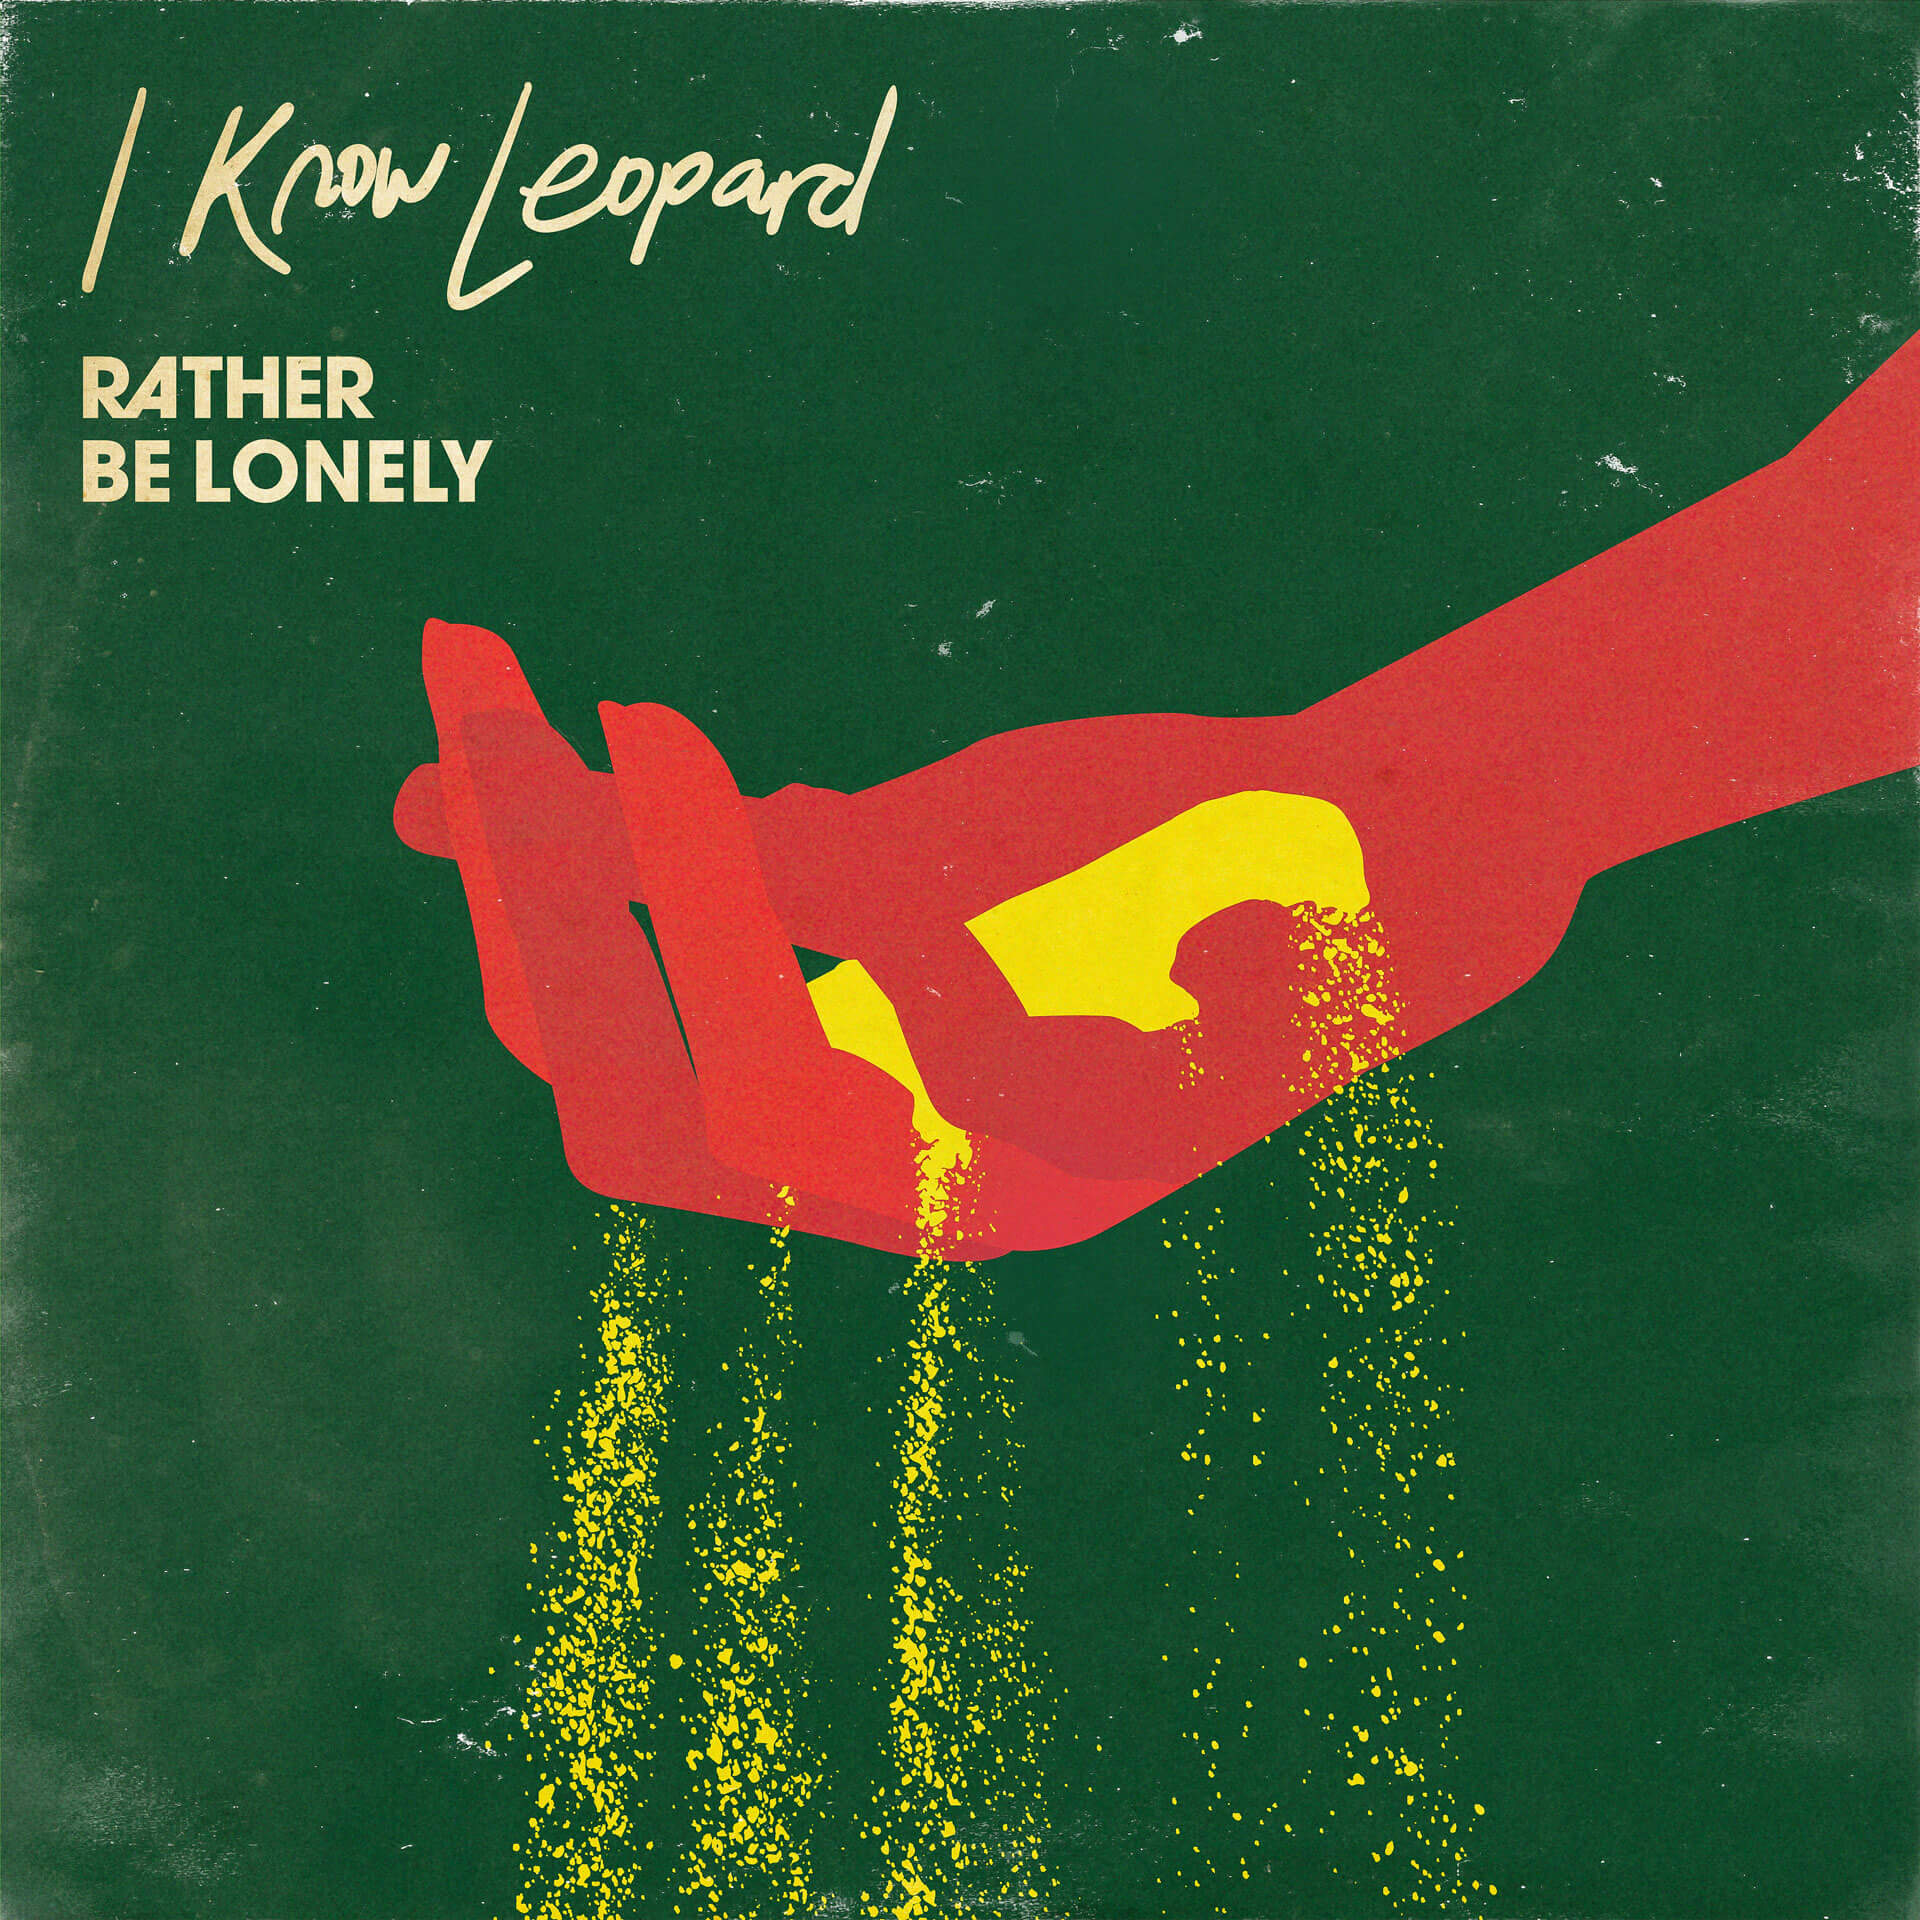 I Know Leopard – I Would Rather Be Lonely